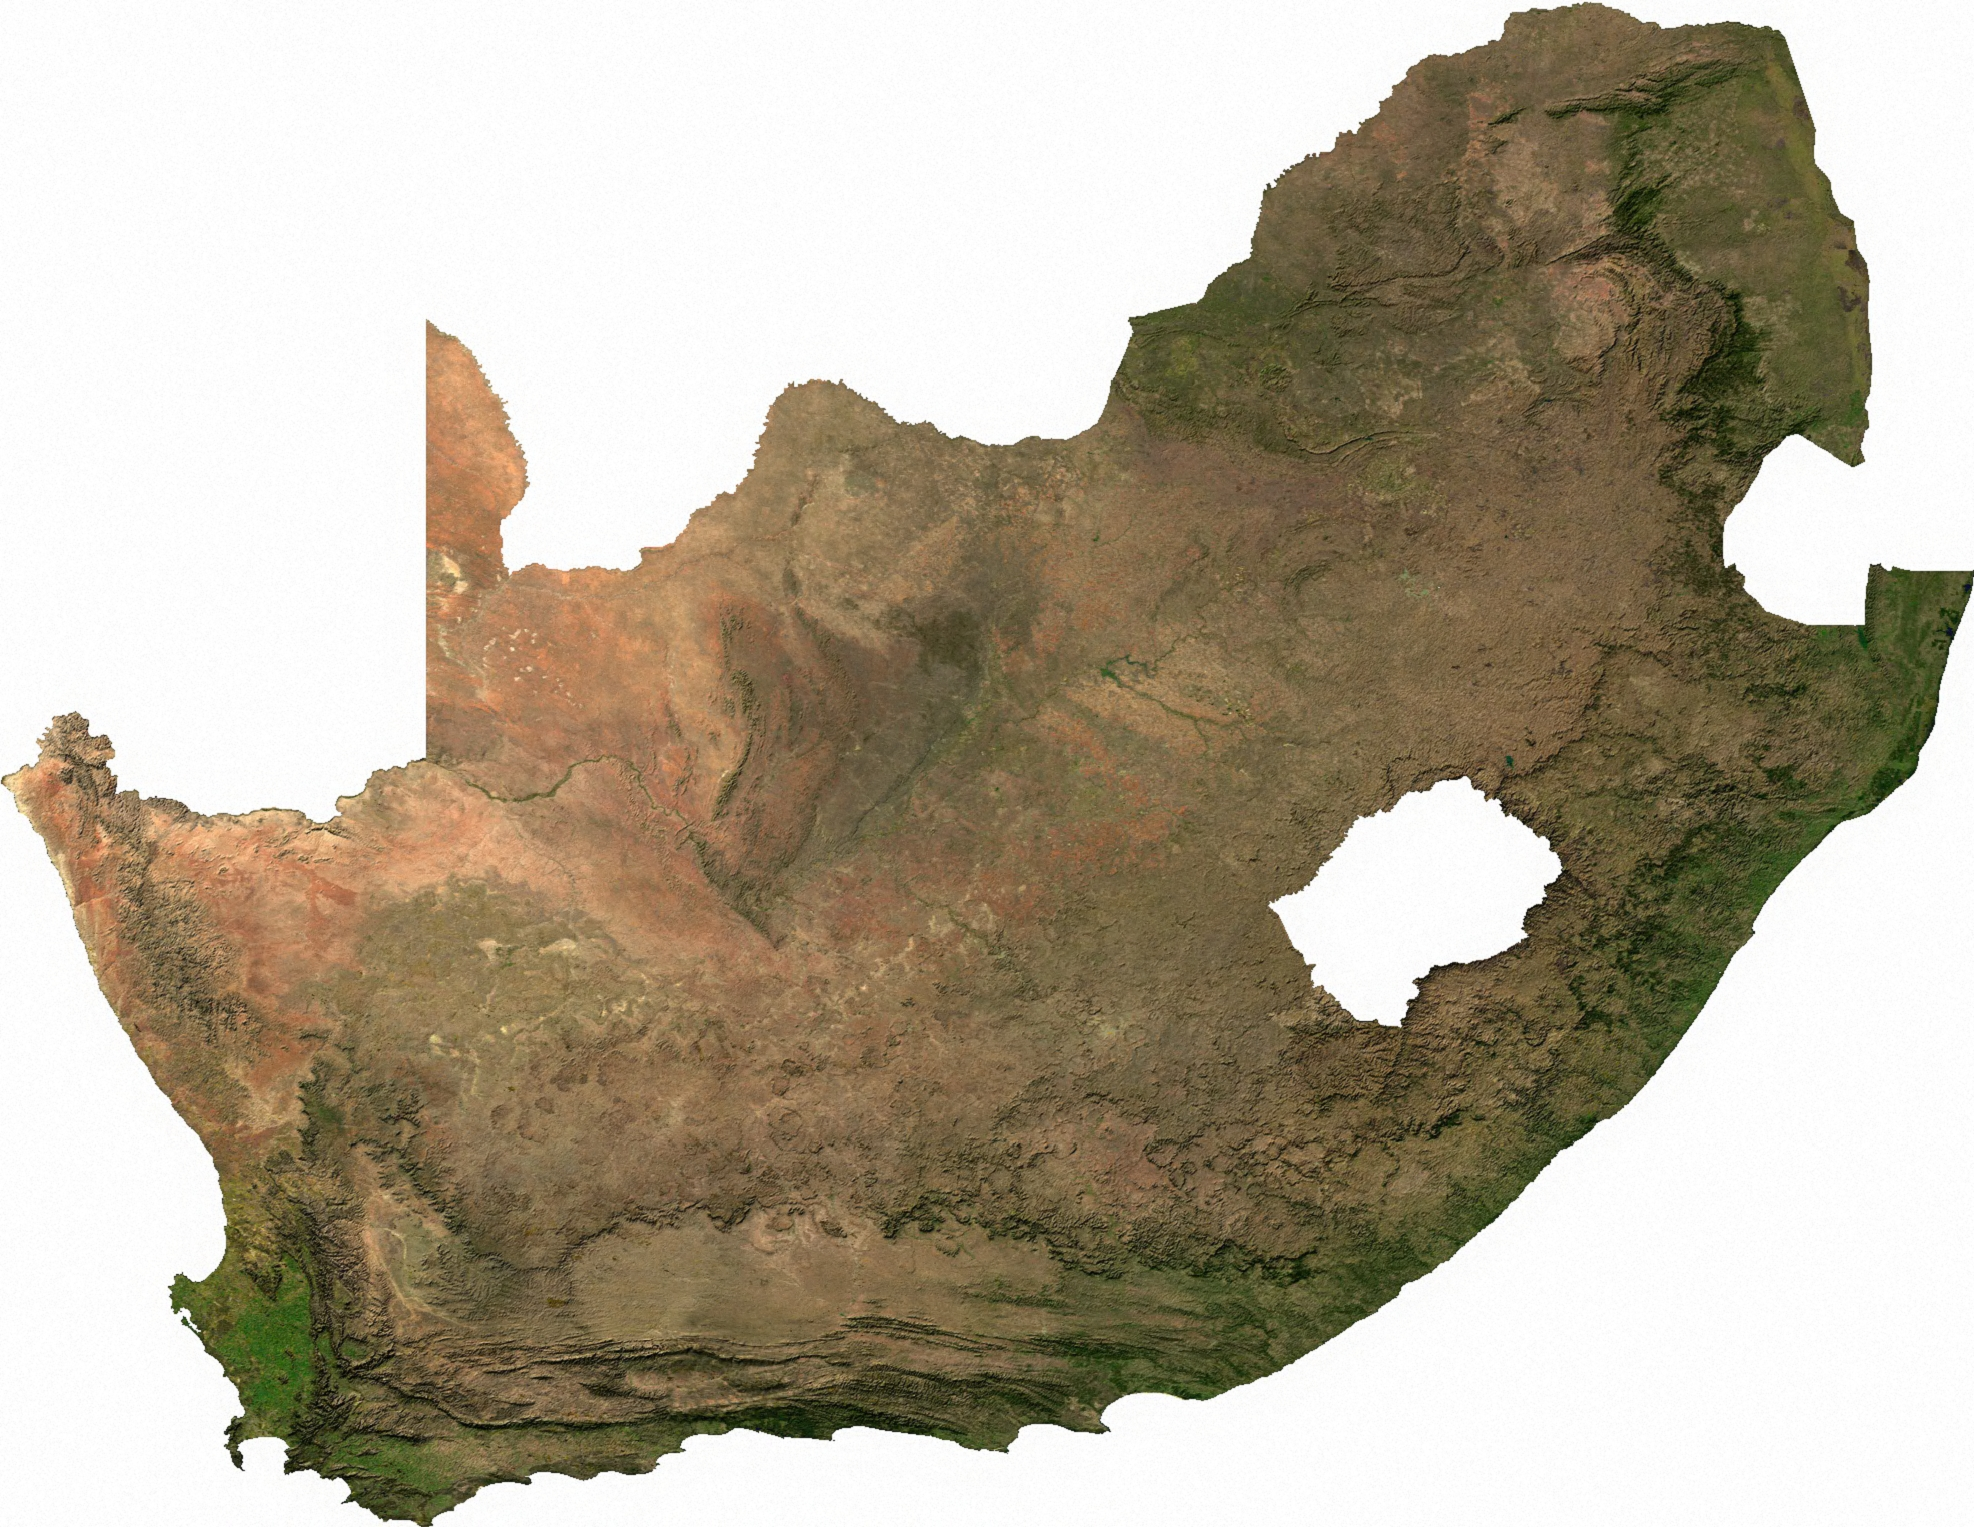 external image South_Africa_sat.jpg